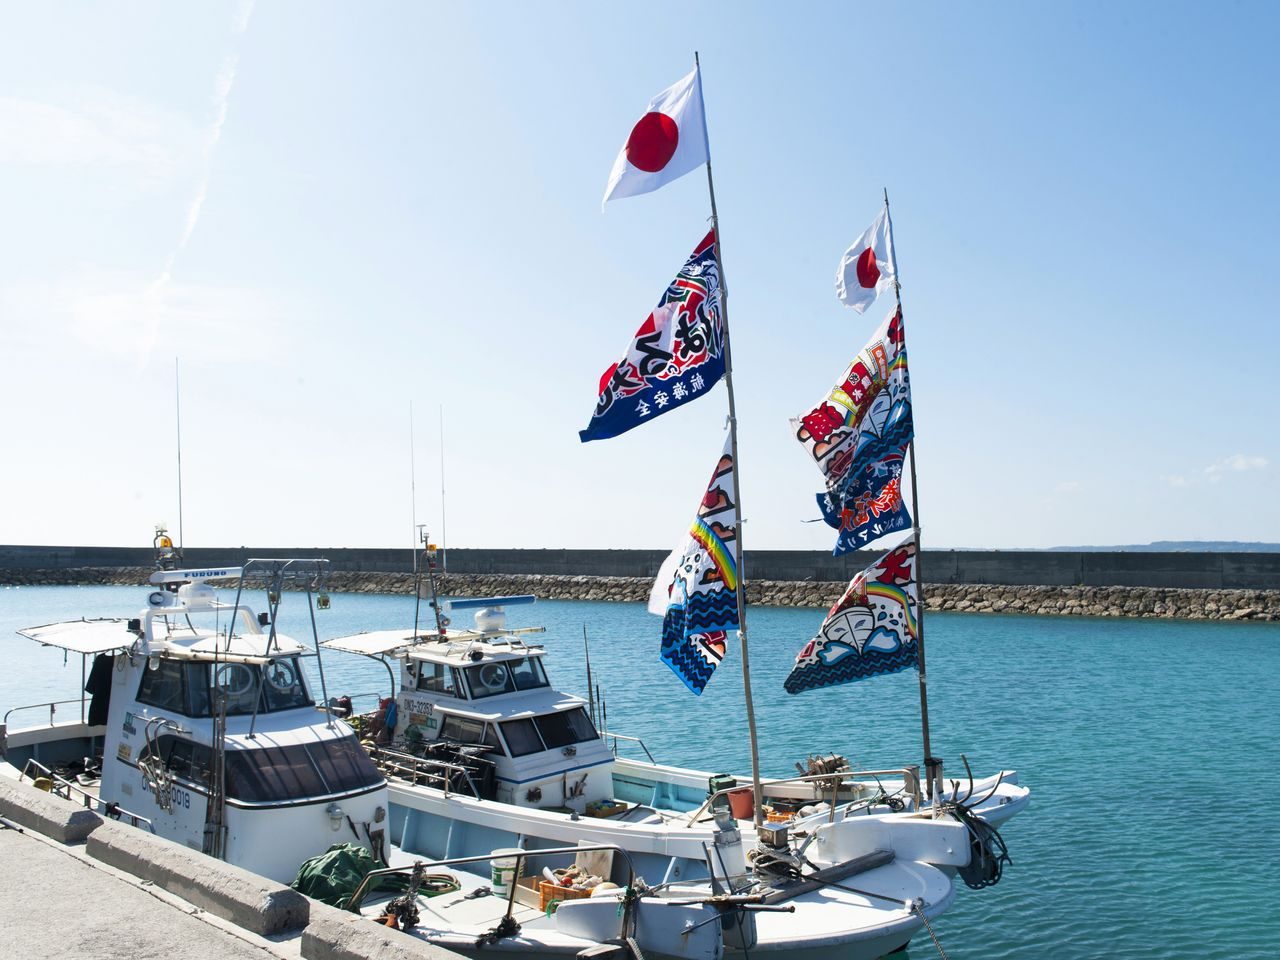 Fishing boats moored at a fishing port display colorful <em>tairyōbata</em> banners.